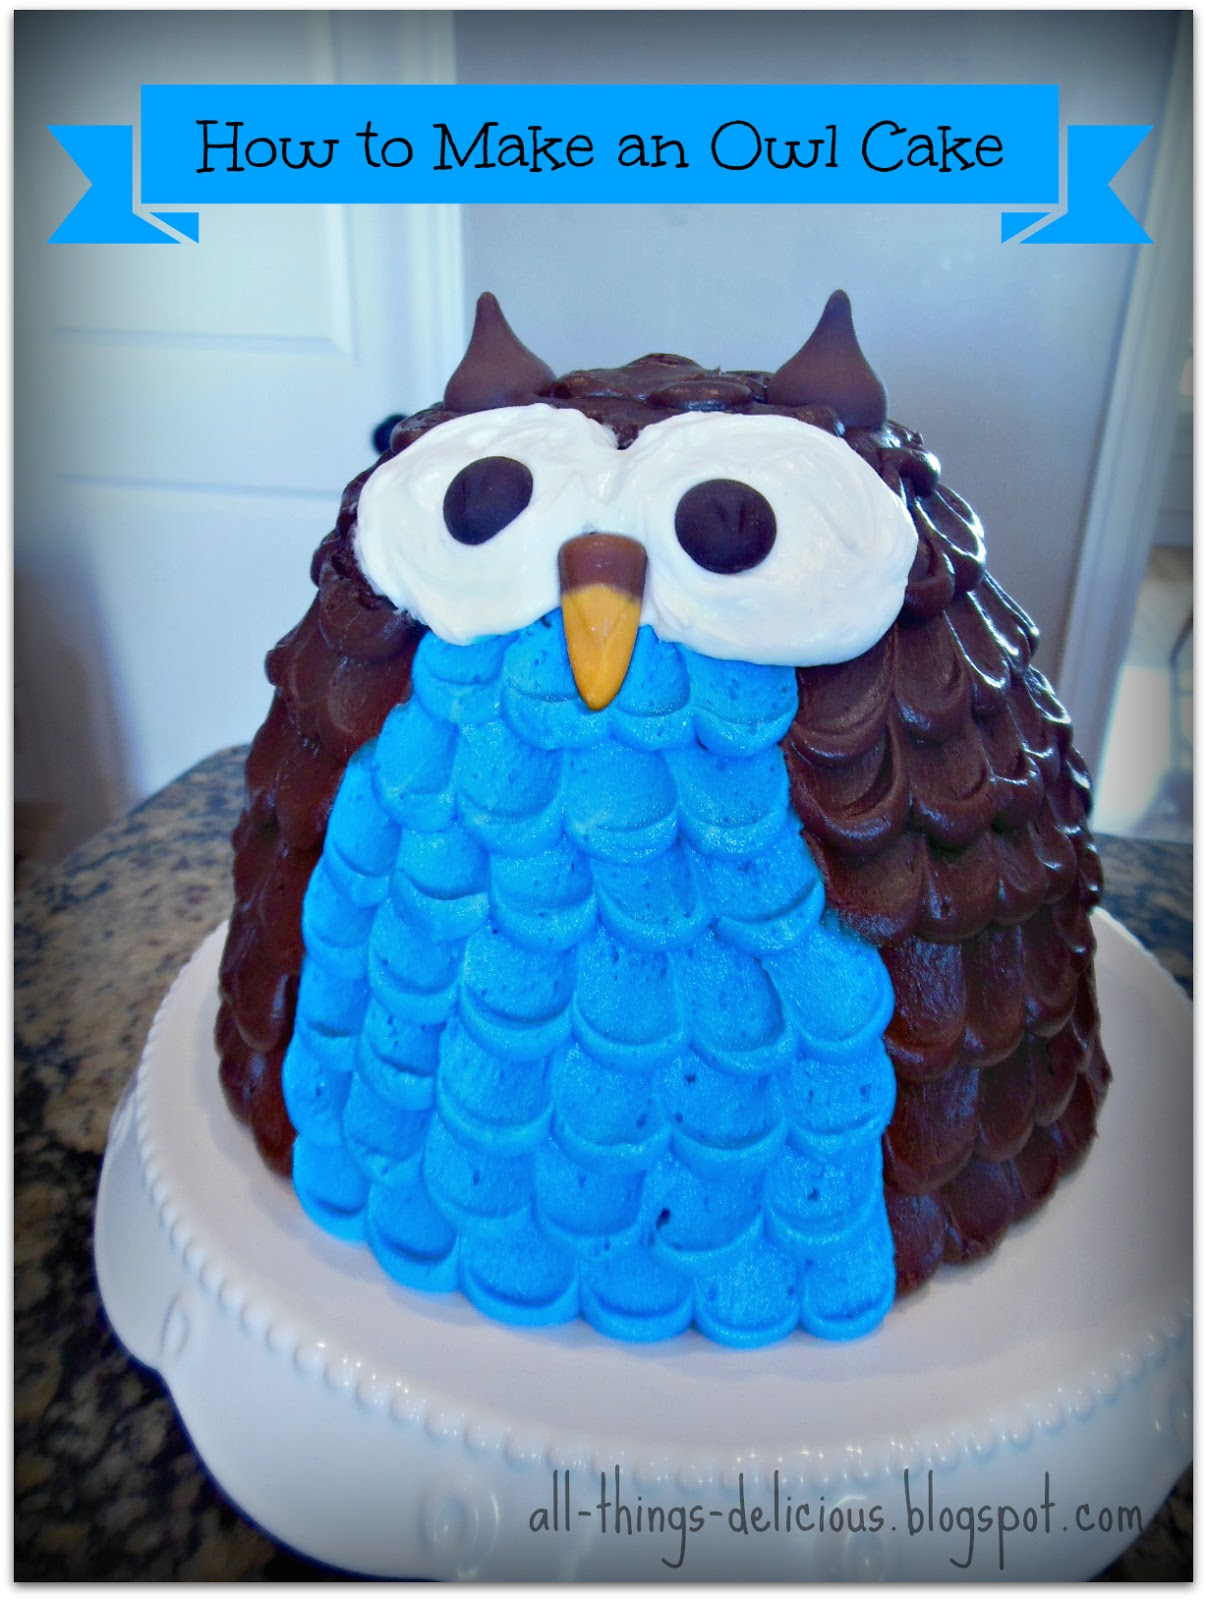 ALL THINGS DELICIOUS How to Make an Owl Cake